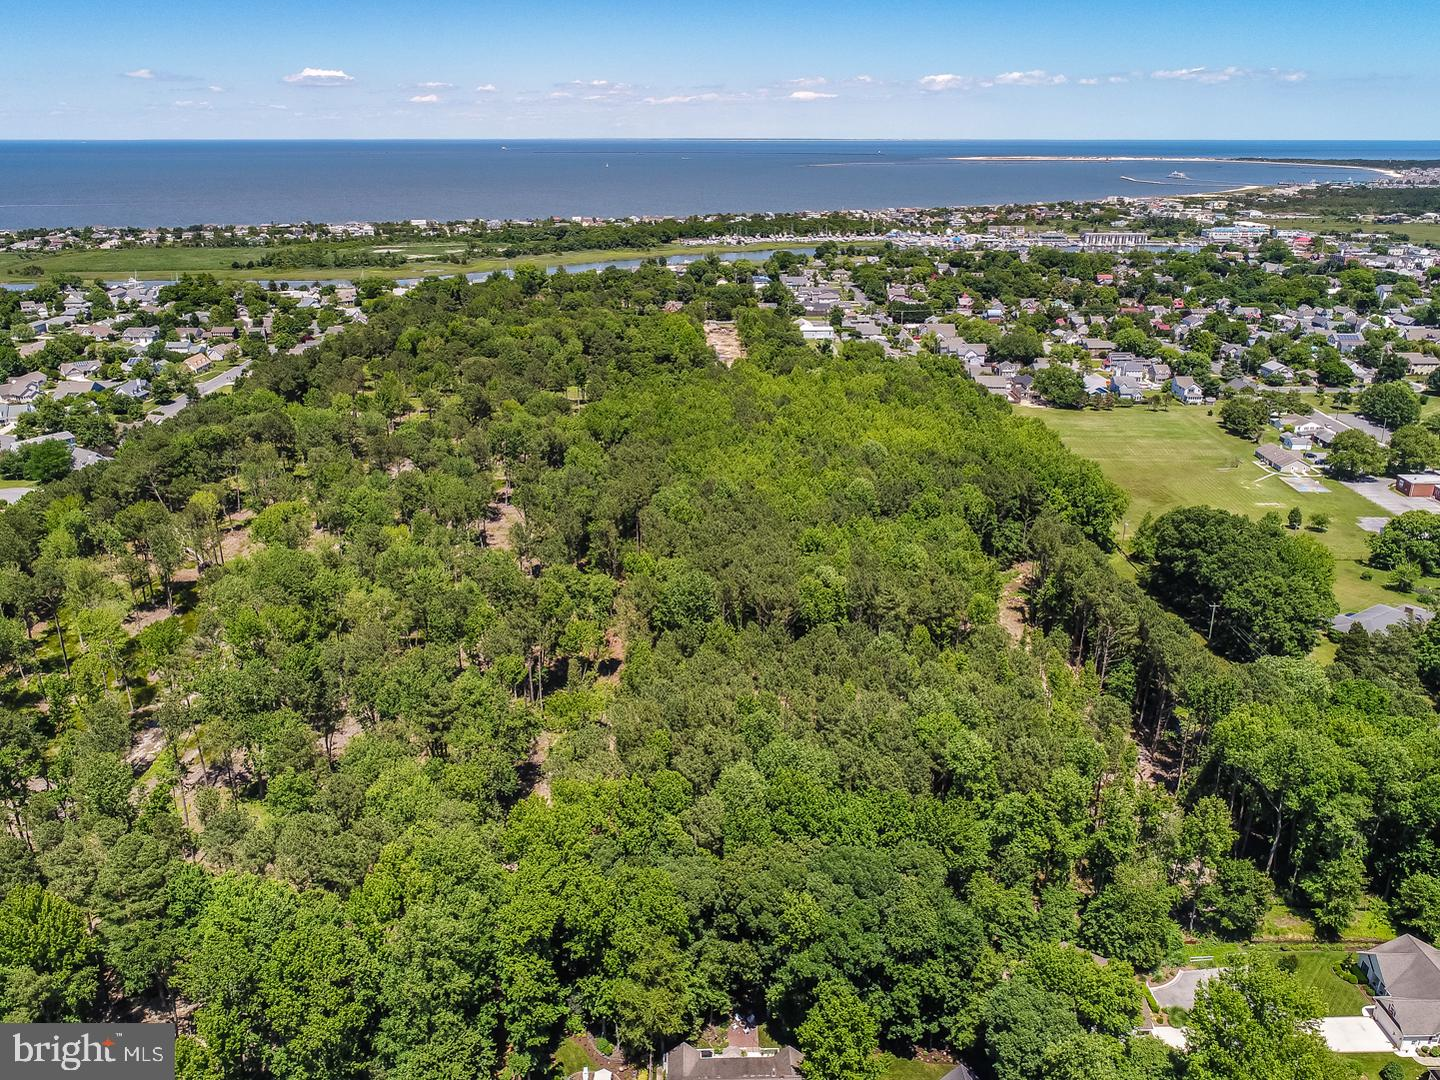 1002048132-300478309034-2020-08-27-01-32-26 Sold Listings - Rehoboth Beach Real Estate - Bryce Lingo and Shaun Tull REALTORS, Rehoboth Beach, Delaware